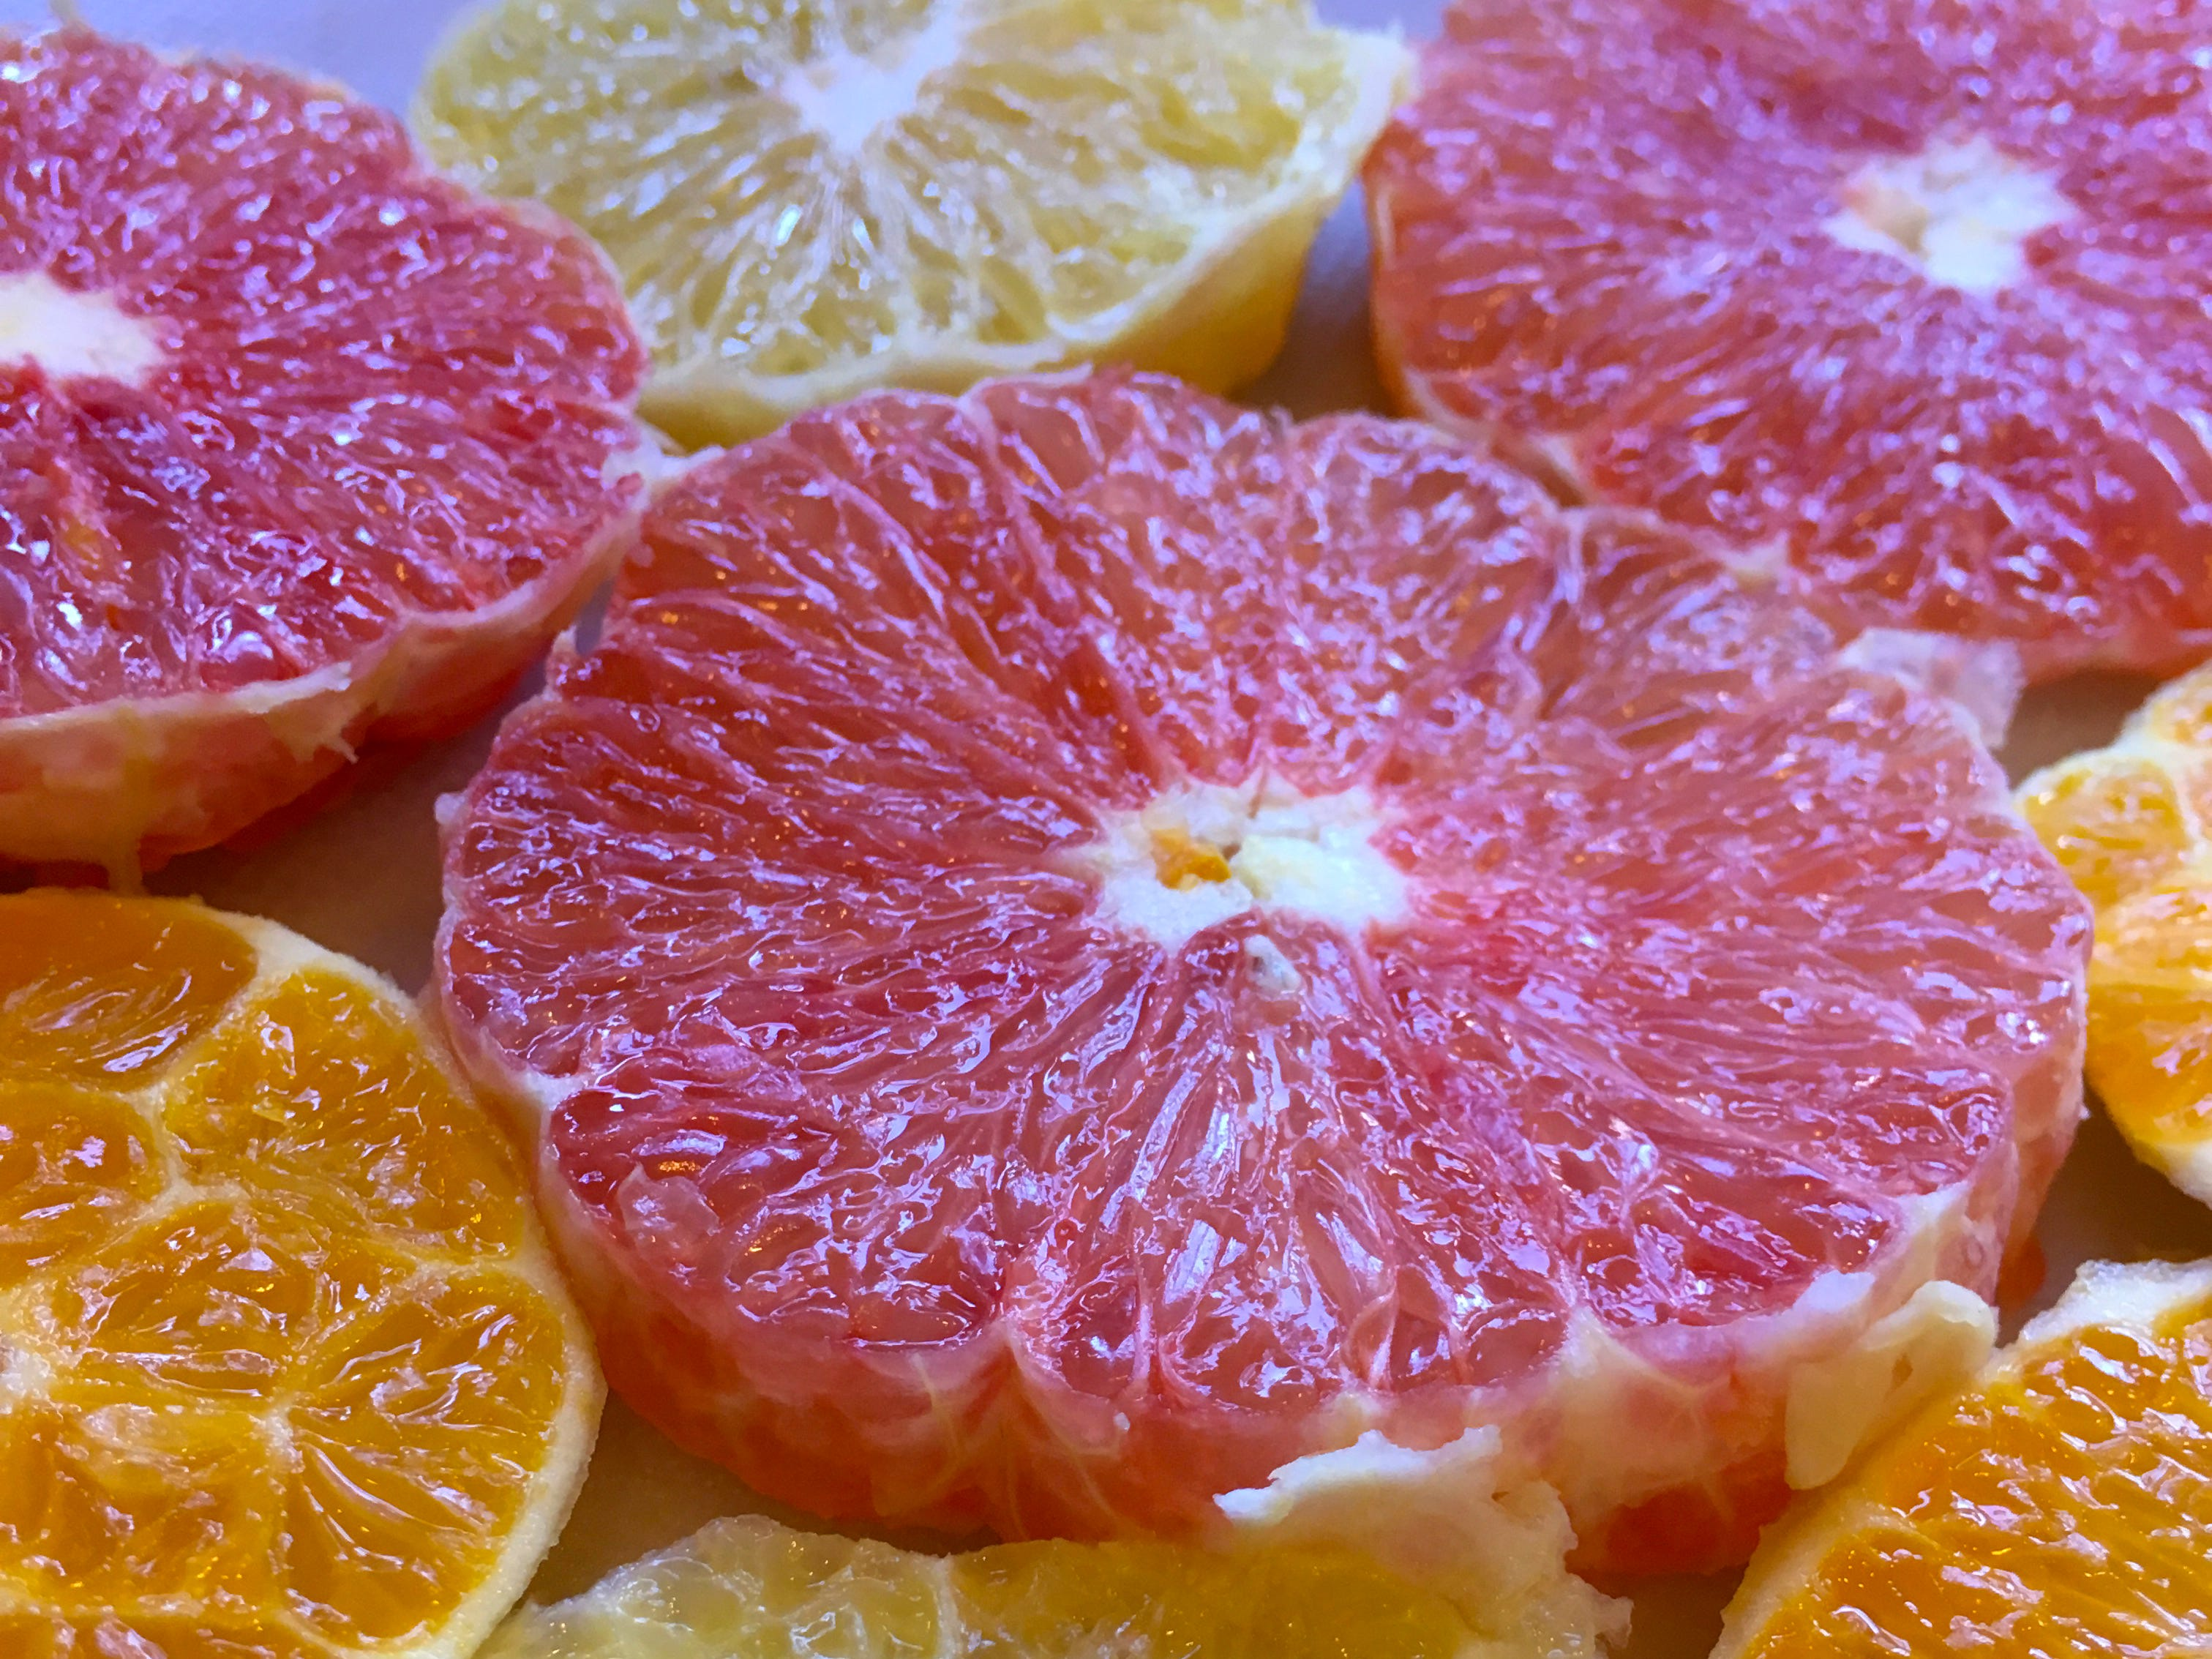 Estero High School student Grace Reese took this photo of colorful citrus.